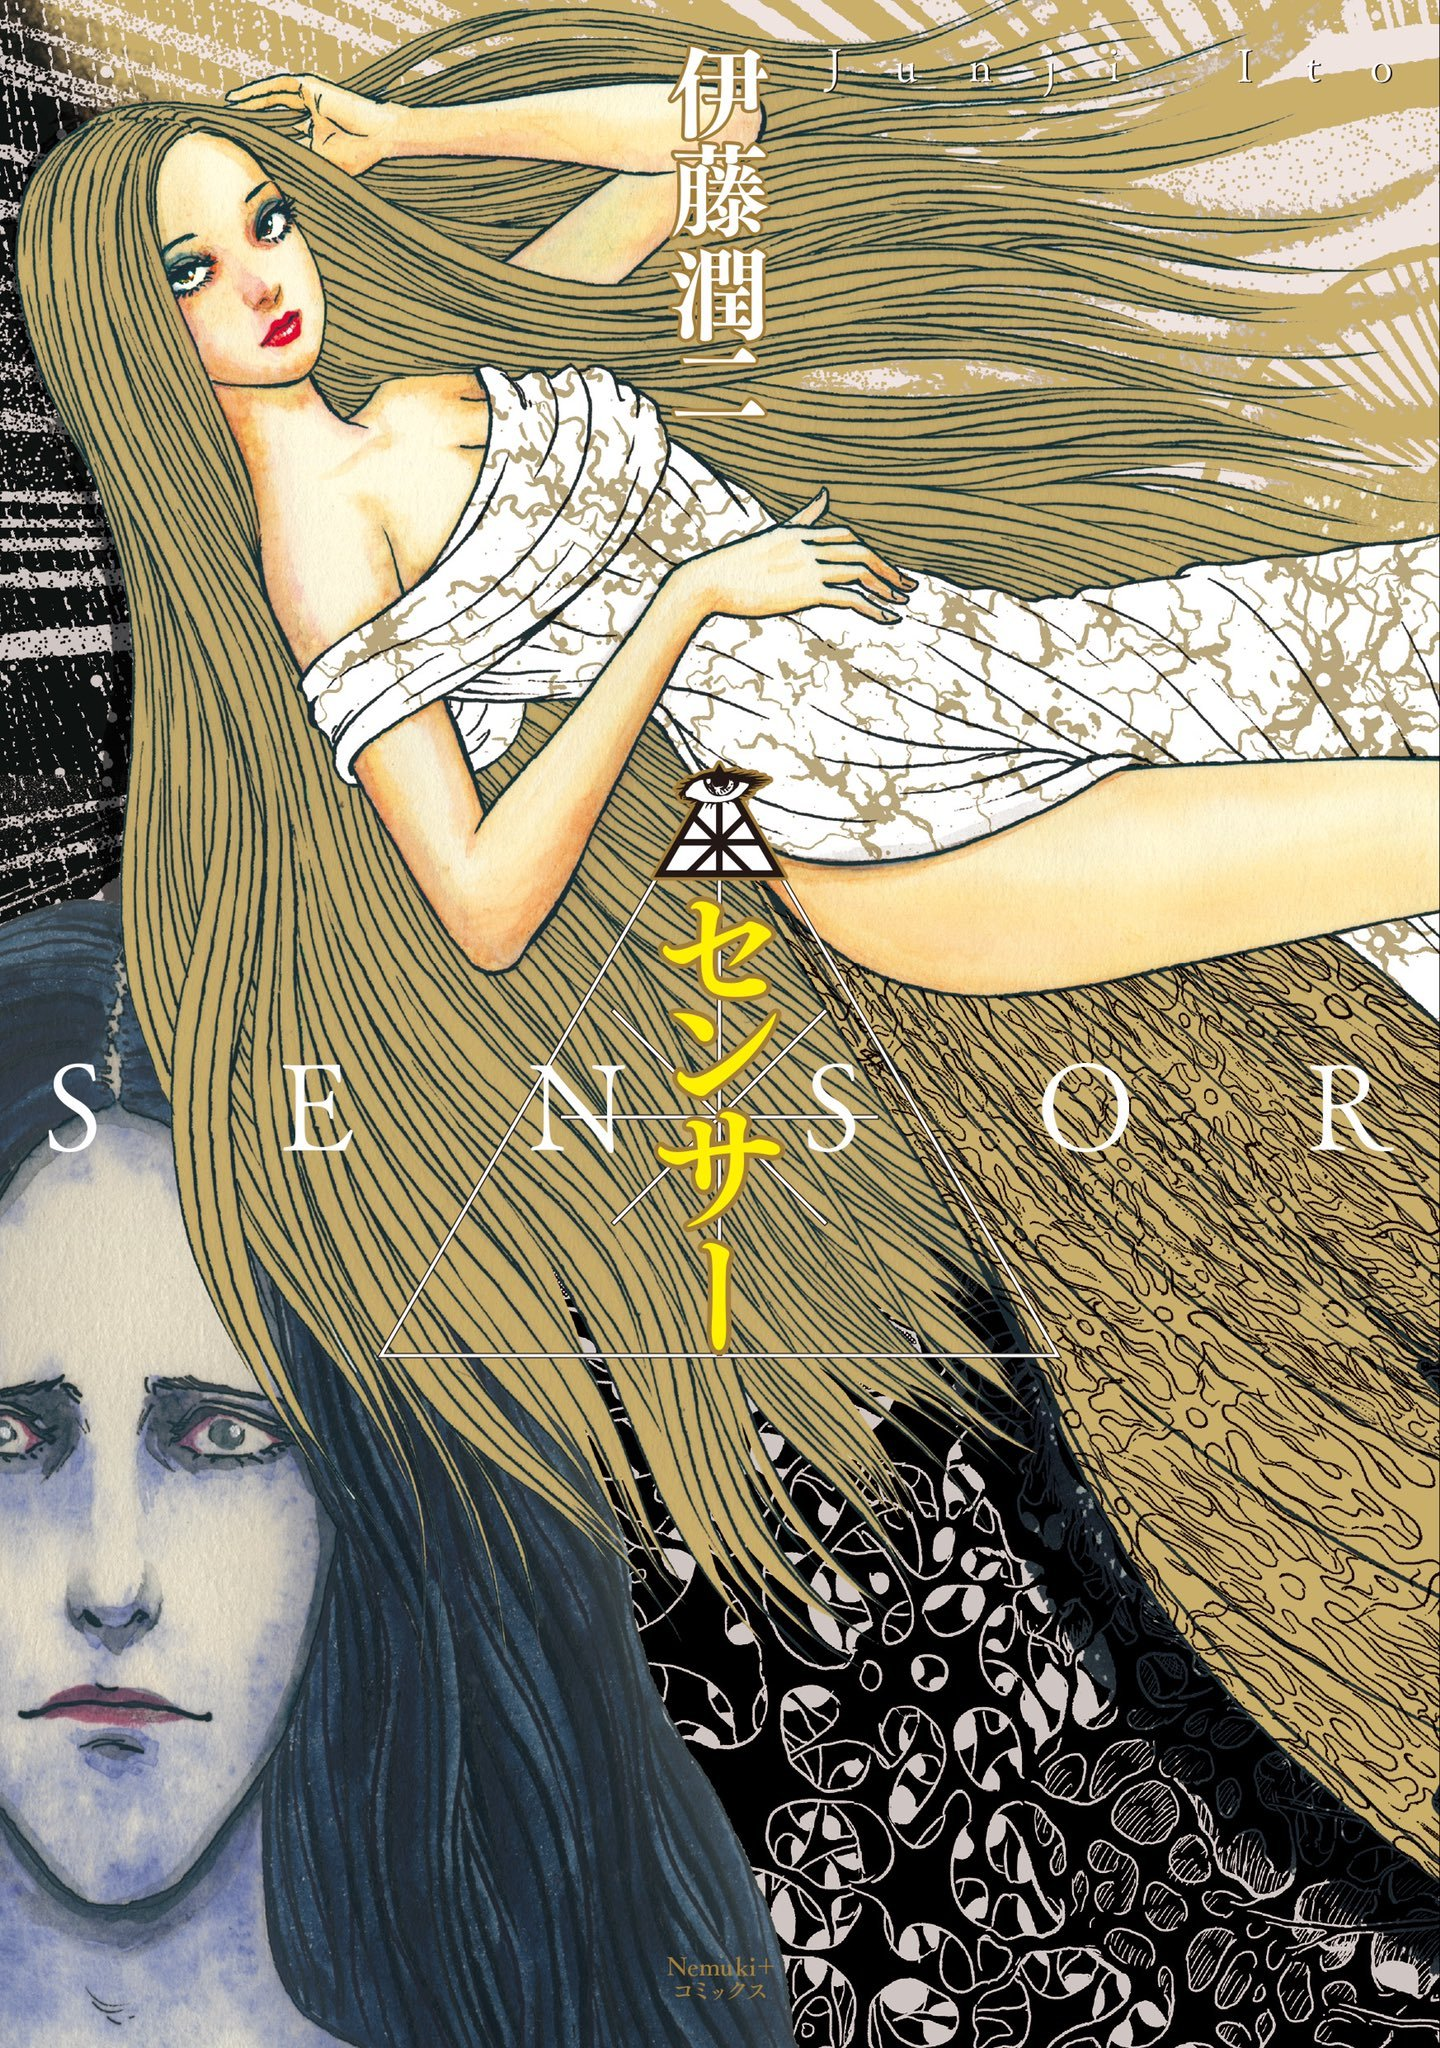 """Junji Itou will release his manga """"Travelogue of a Succubus"""" (Muma no kikou) in one collected volume on November 7, 2019 in Japan. It will also get a new name for this - """"Sensor"""". It was previously serialized in Nemuki+. It's about the strange worshipping of a golden haired girl. https://t.co/qwMMJV5l7S"""